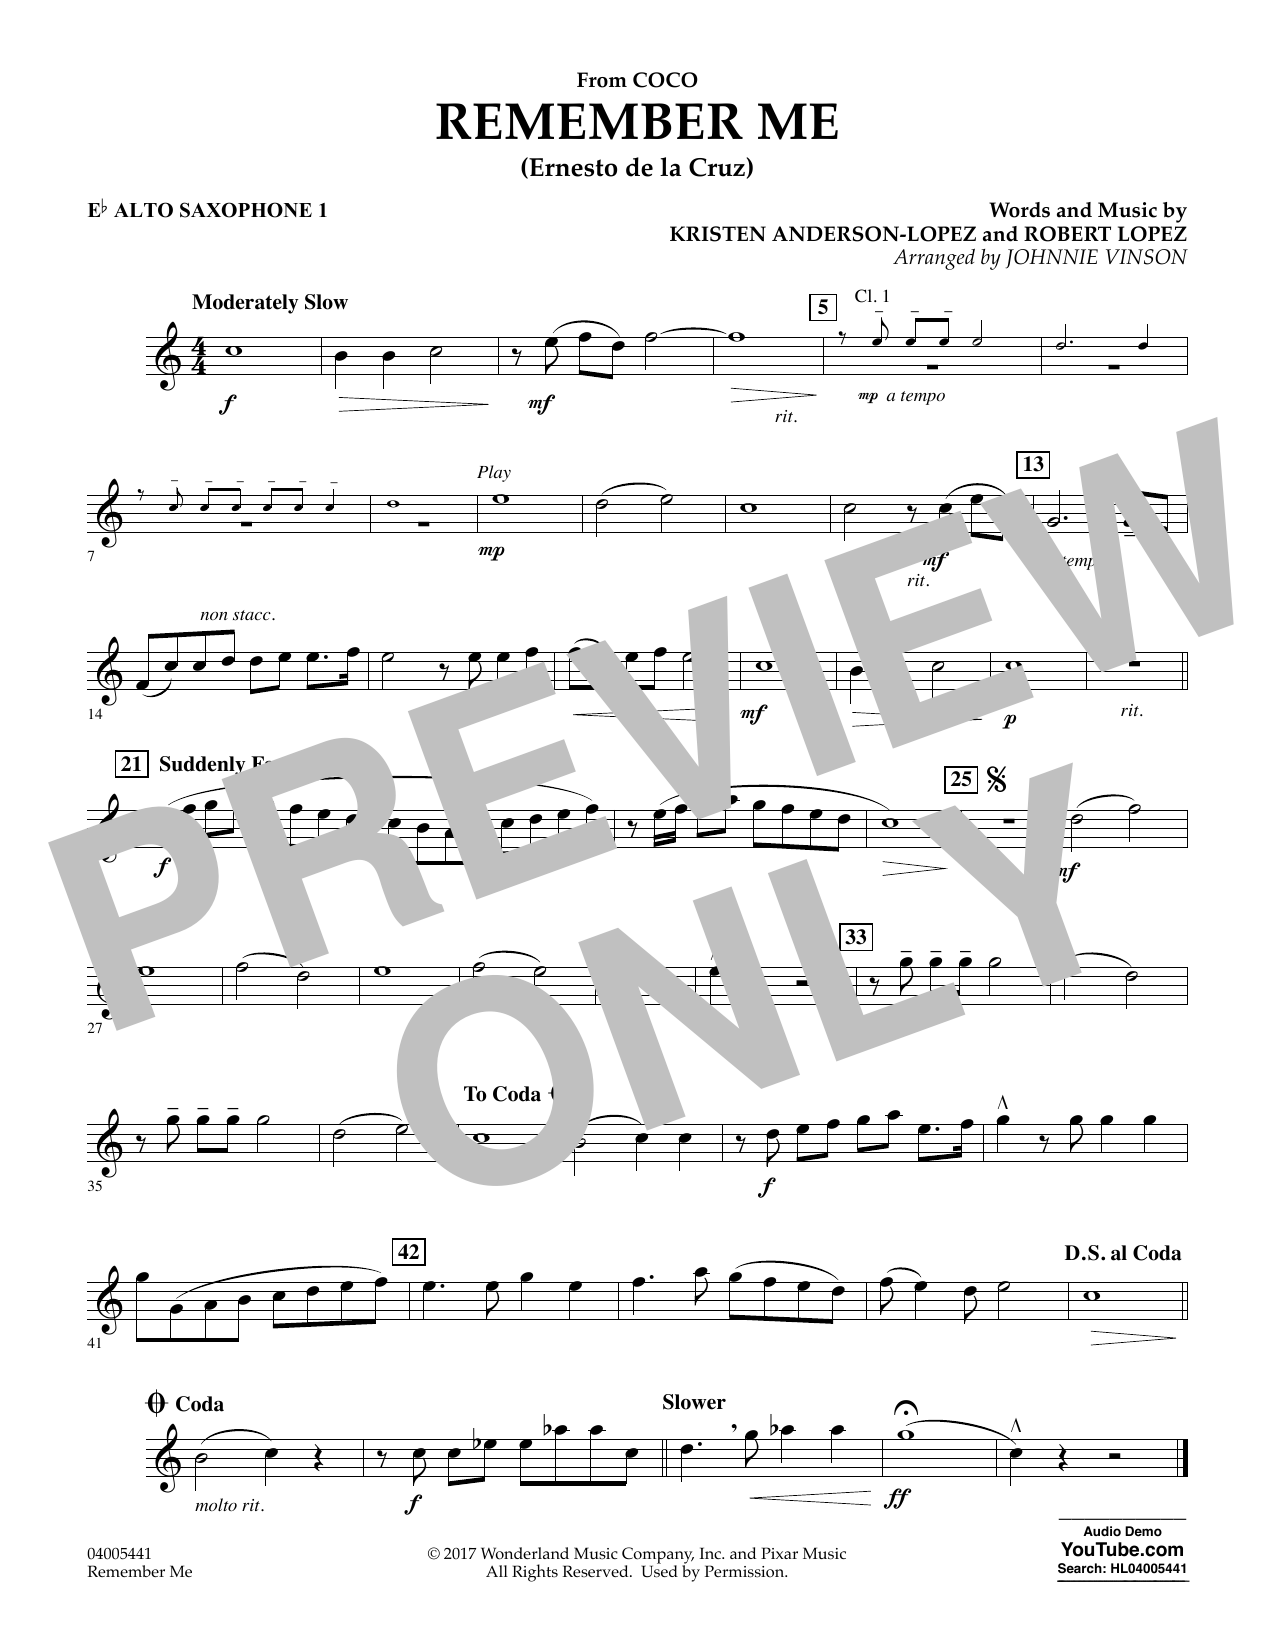 Kristen Anderson-Lopez & Robert Lopez Remember Me (from Coco) (arr. Johnnie Vinson) - Eb Alto Saxophone 1 sheet music preview music notes and score for Concert Band including 1 page(s)